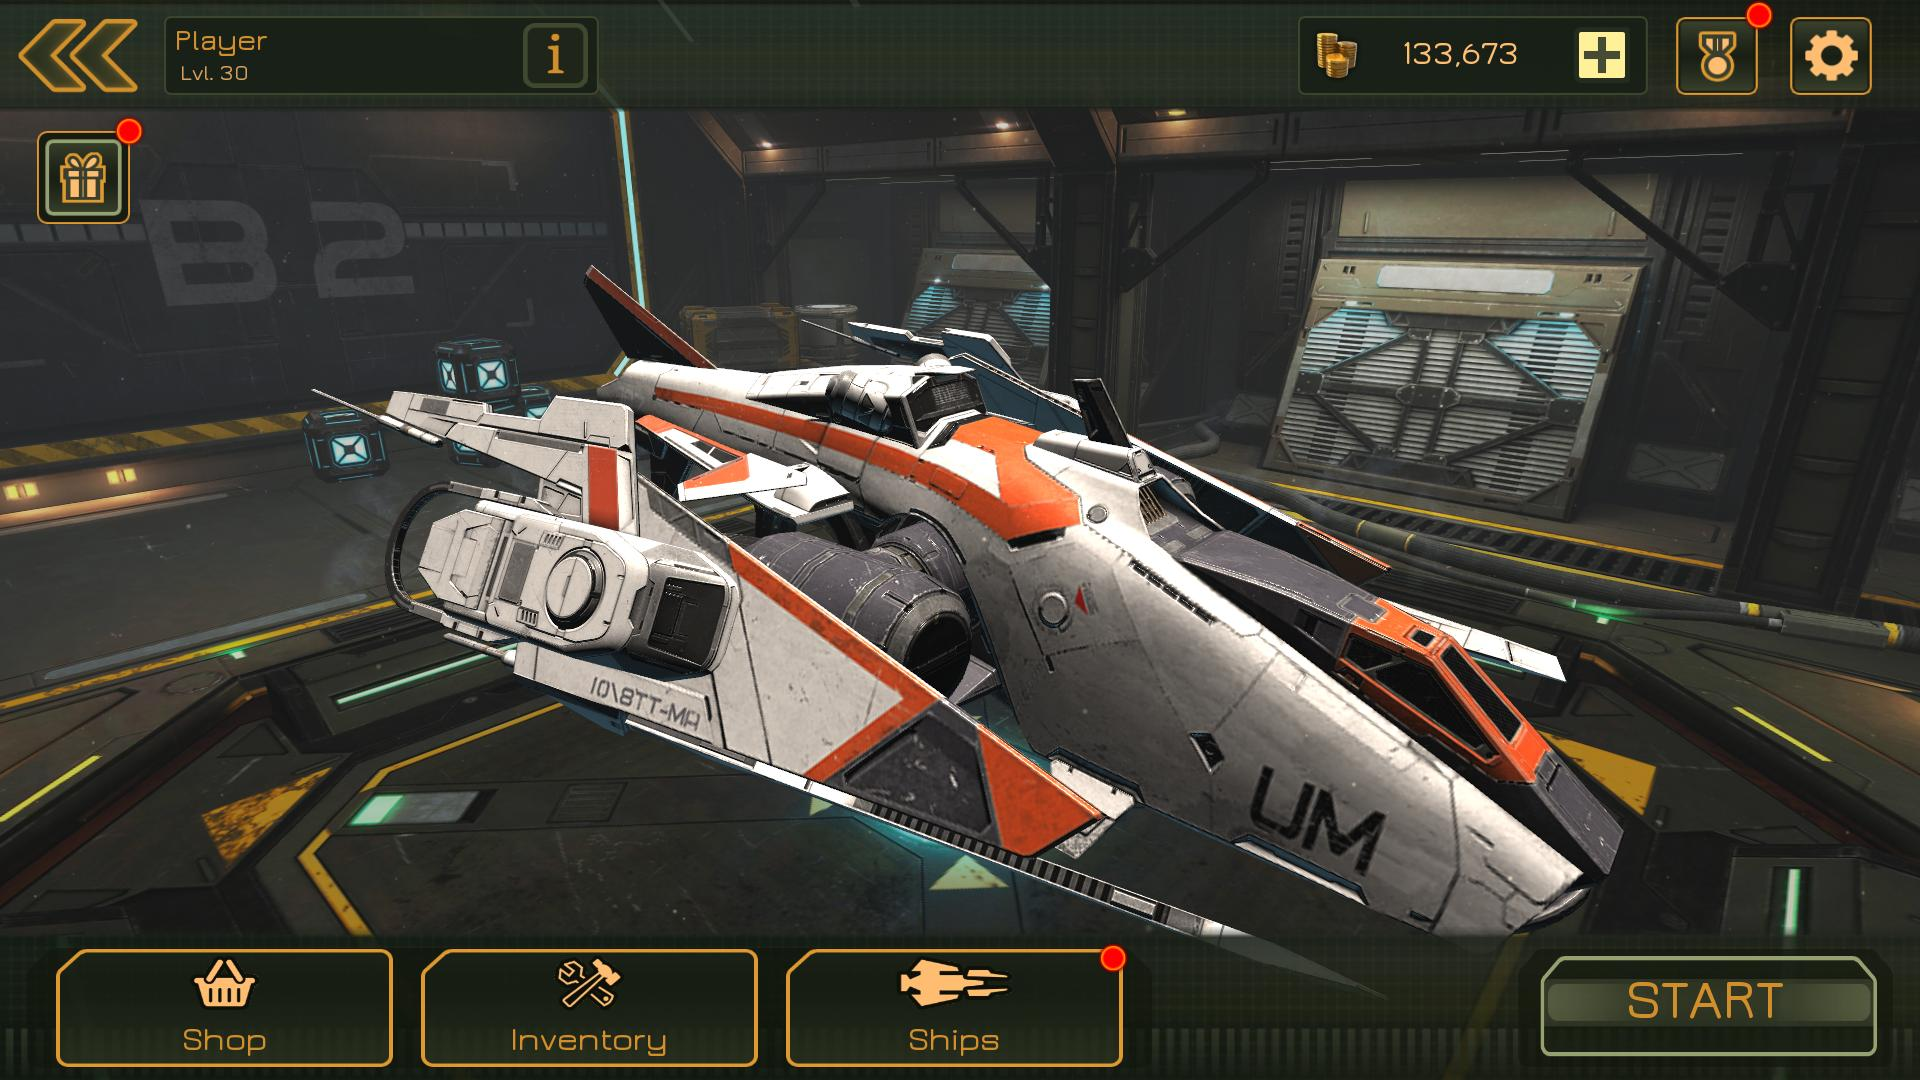 Subdivision Infinity 3D Space Shooter 1.0.7162 Screenshot 12